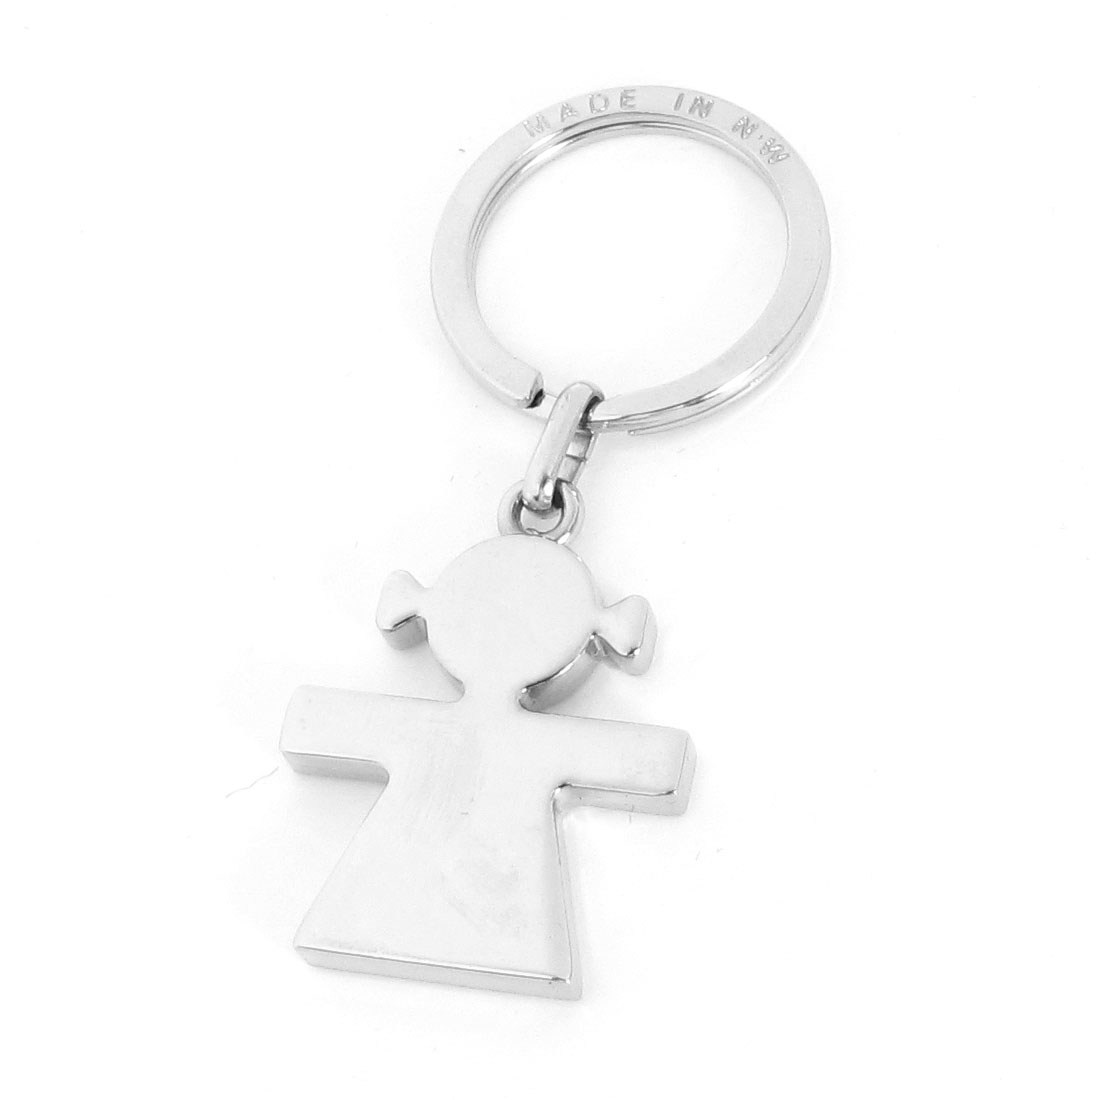 Silver Tone Metal Ring Girl Pendant Key Keys Chain Holder